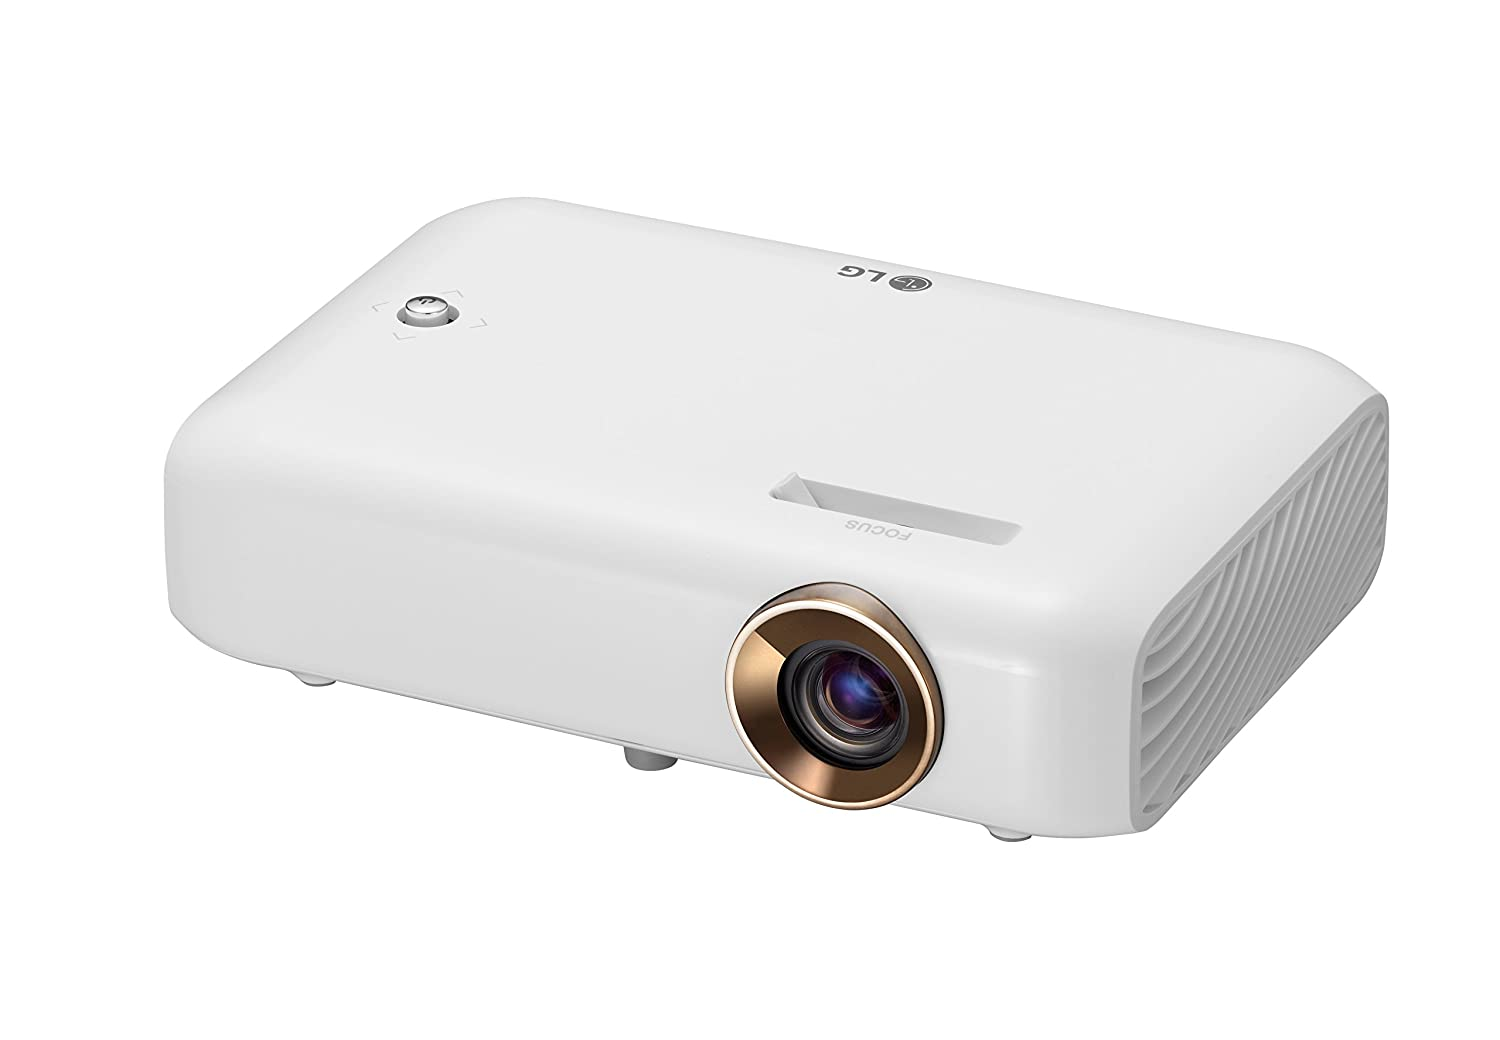 LG PH550 Minibeam Projector Black Friday Deals